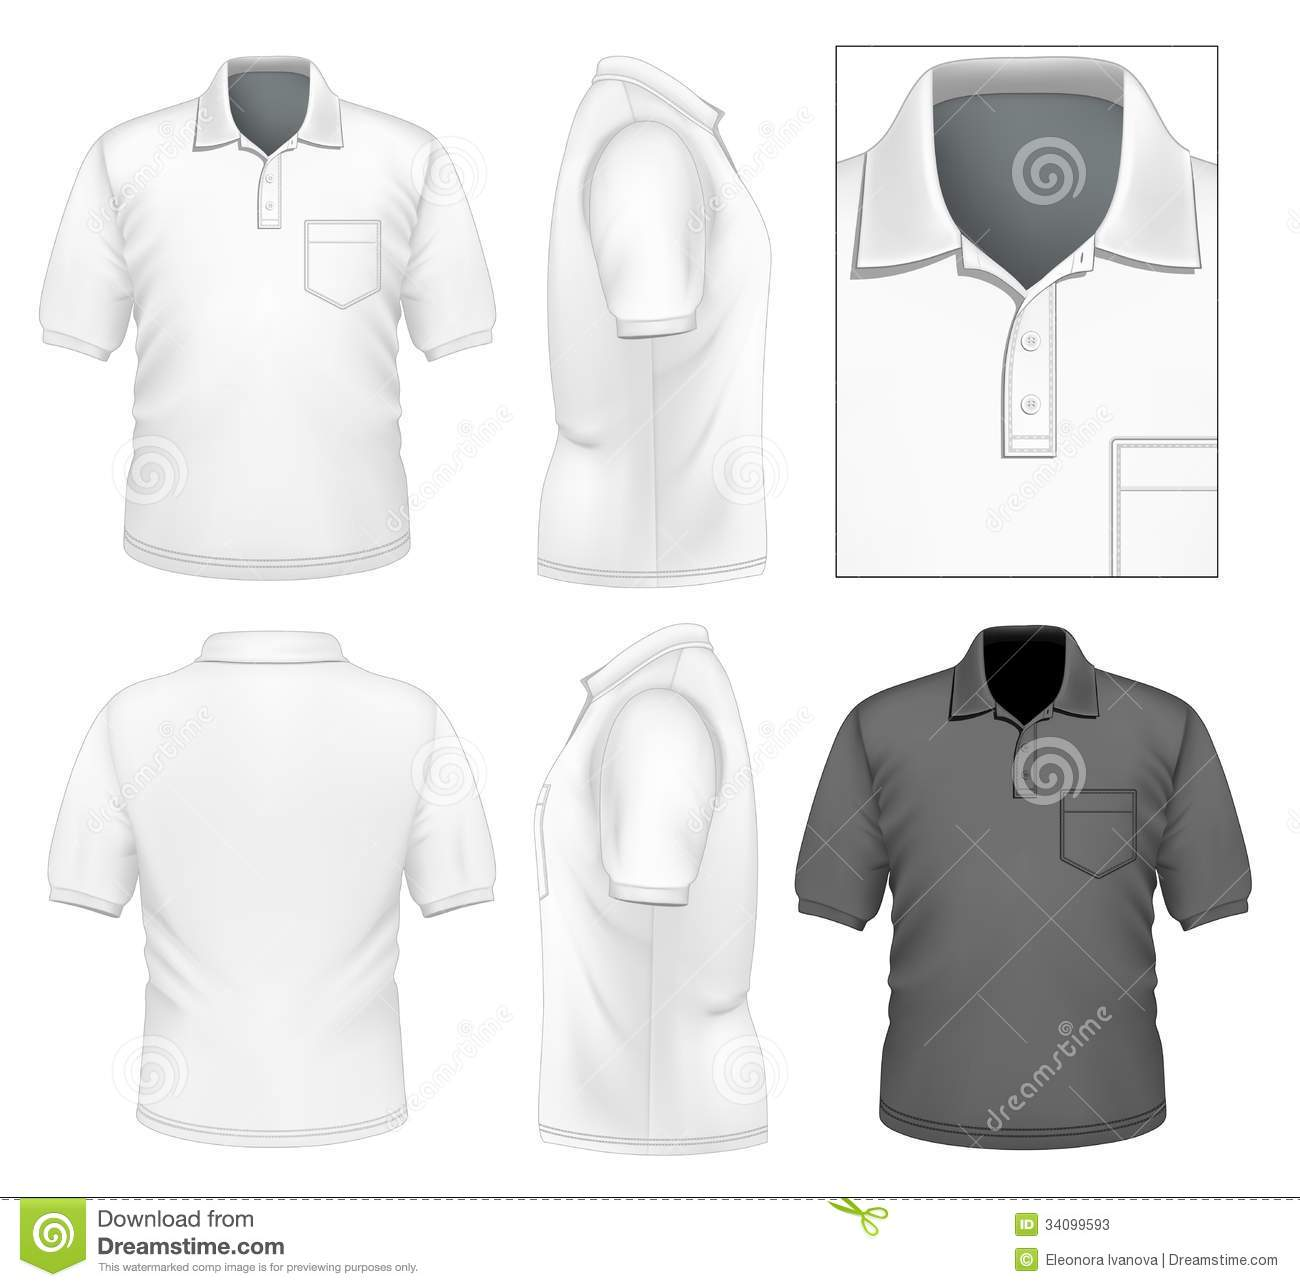 Men 39 s polo shirt design template stock vector image for Polo shirt design template